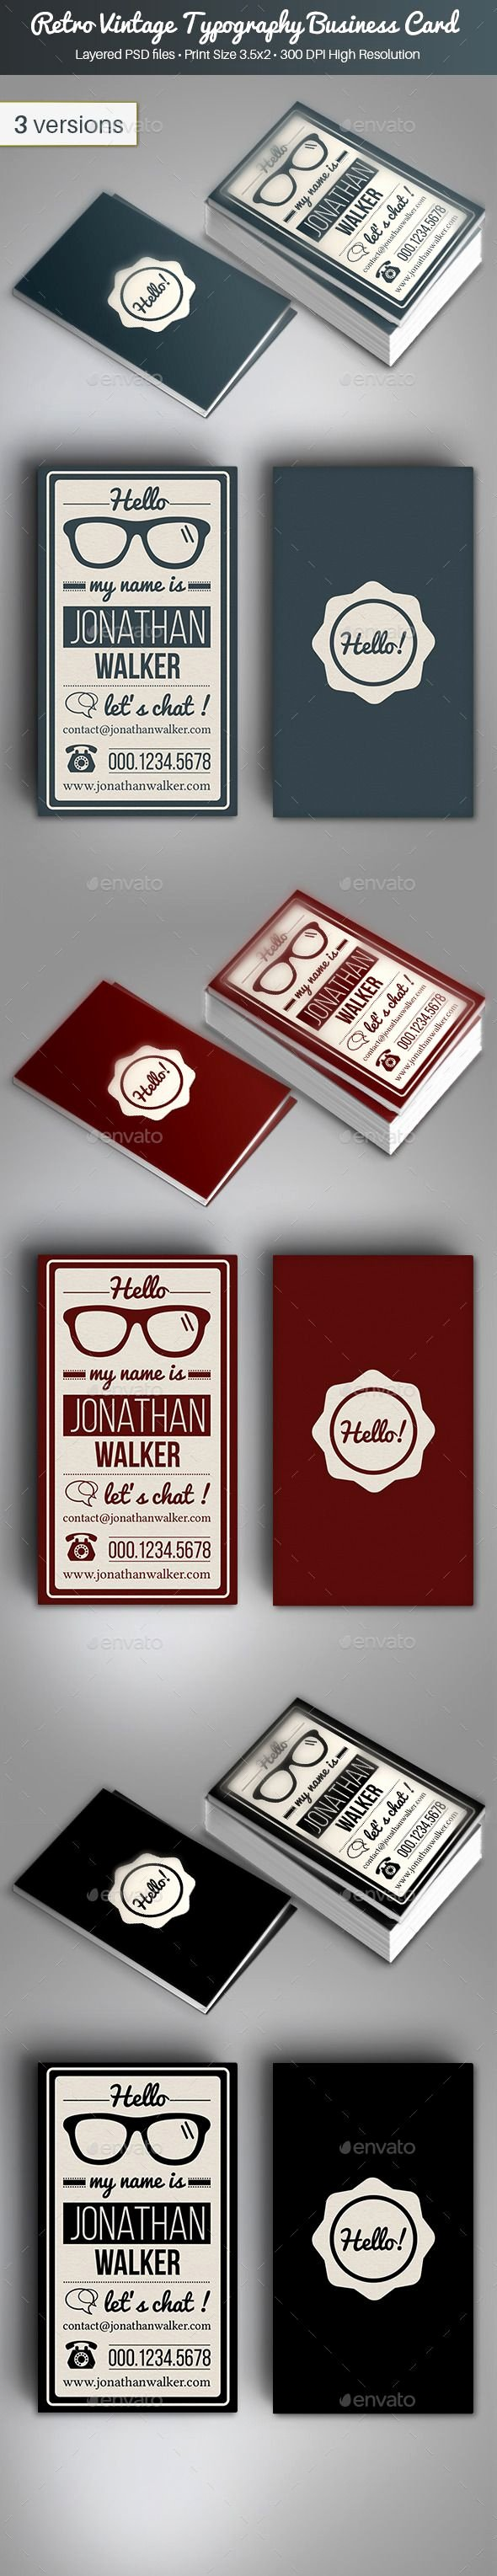 Vintage Style Business Cards Inspirational 25 Best Ideas About Vintage Business Cards On Pinterest